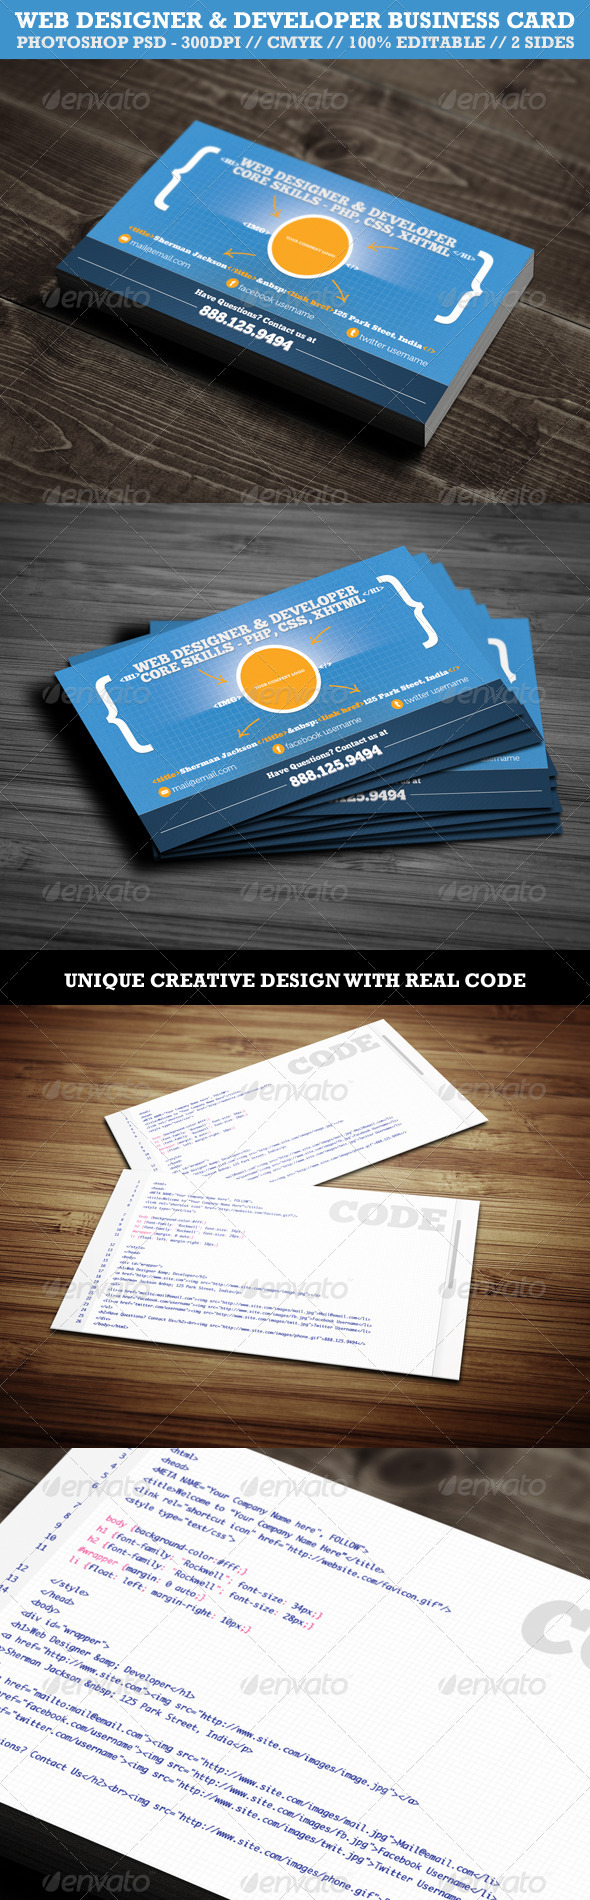 Creative Web Designer Developer Business Card